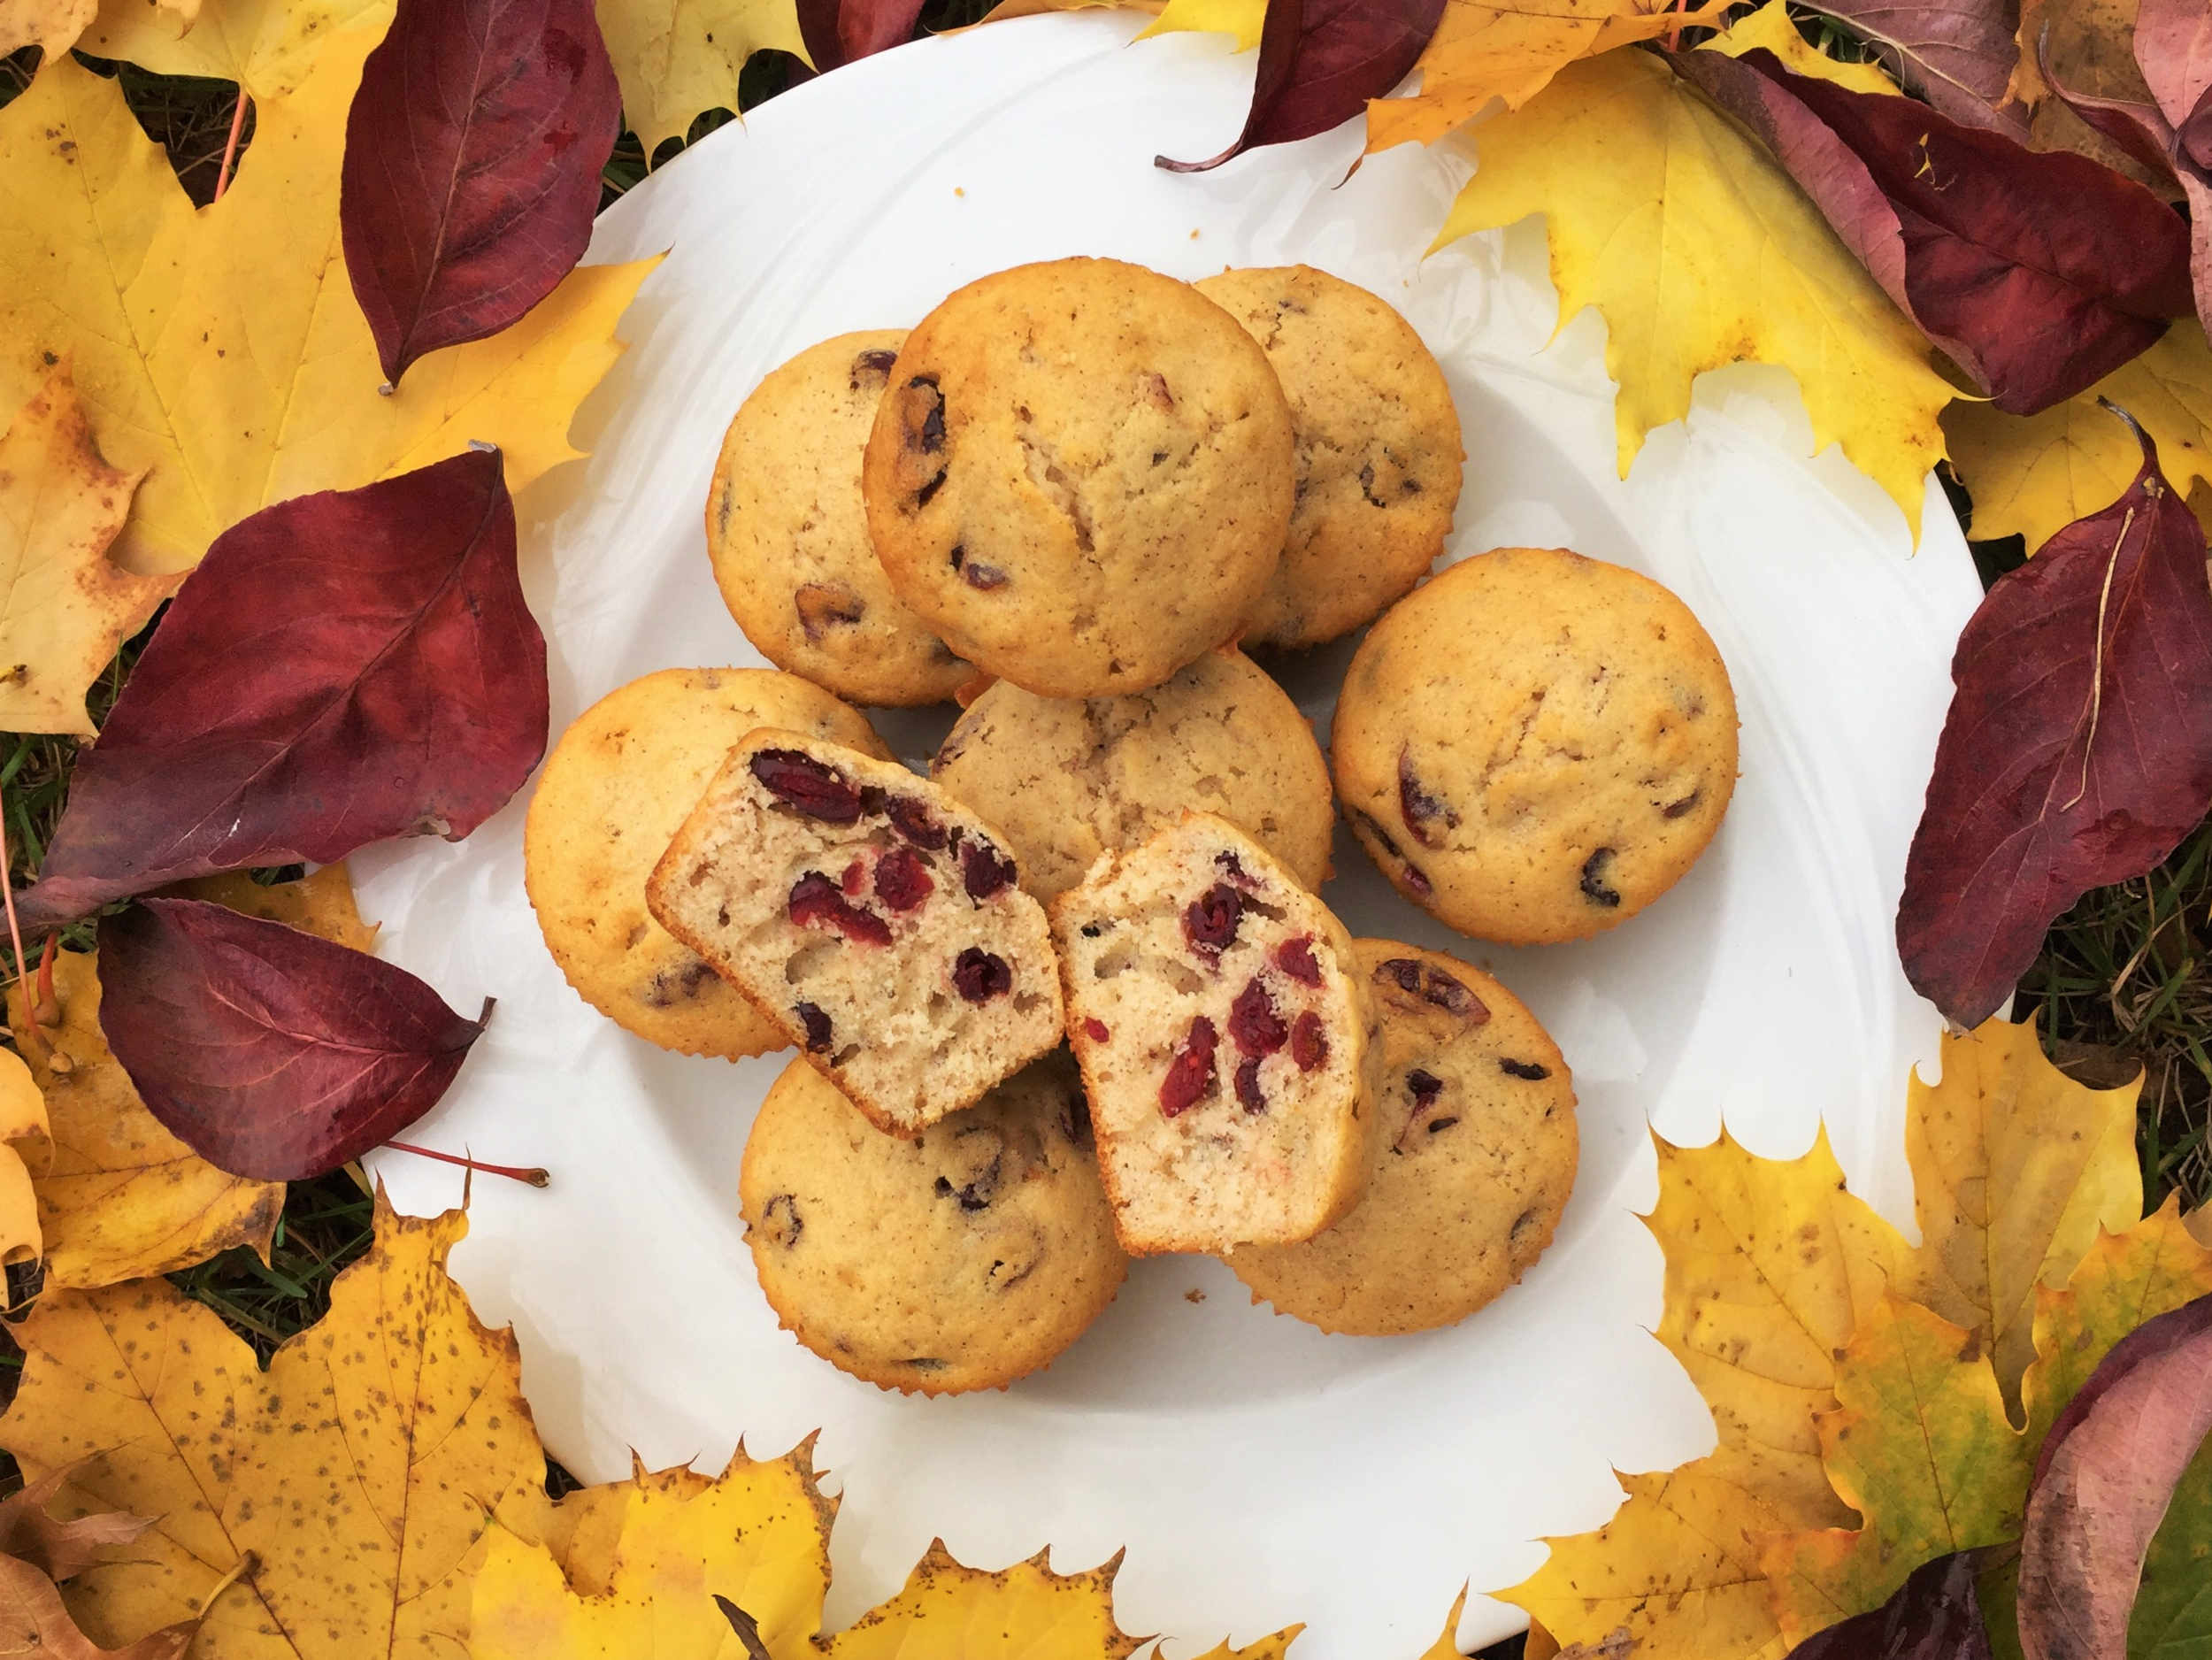 Cinnamon-Cranberry Muffins made in the Adventure Kitchen in November 2015